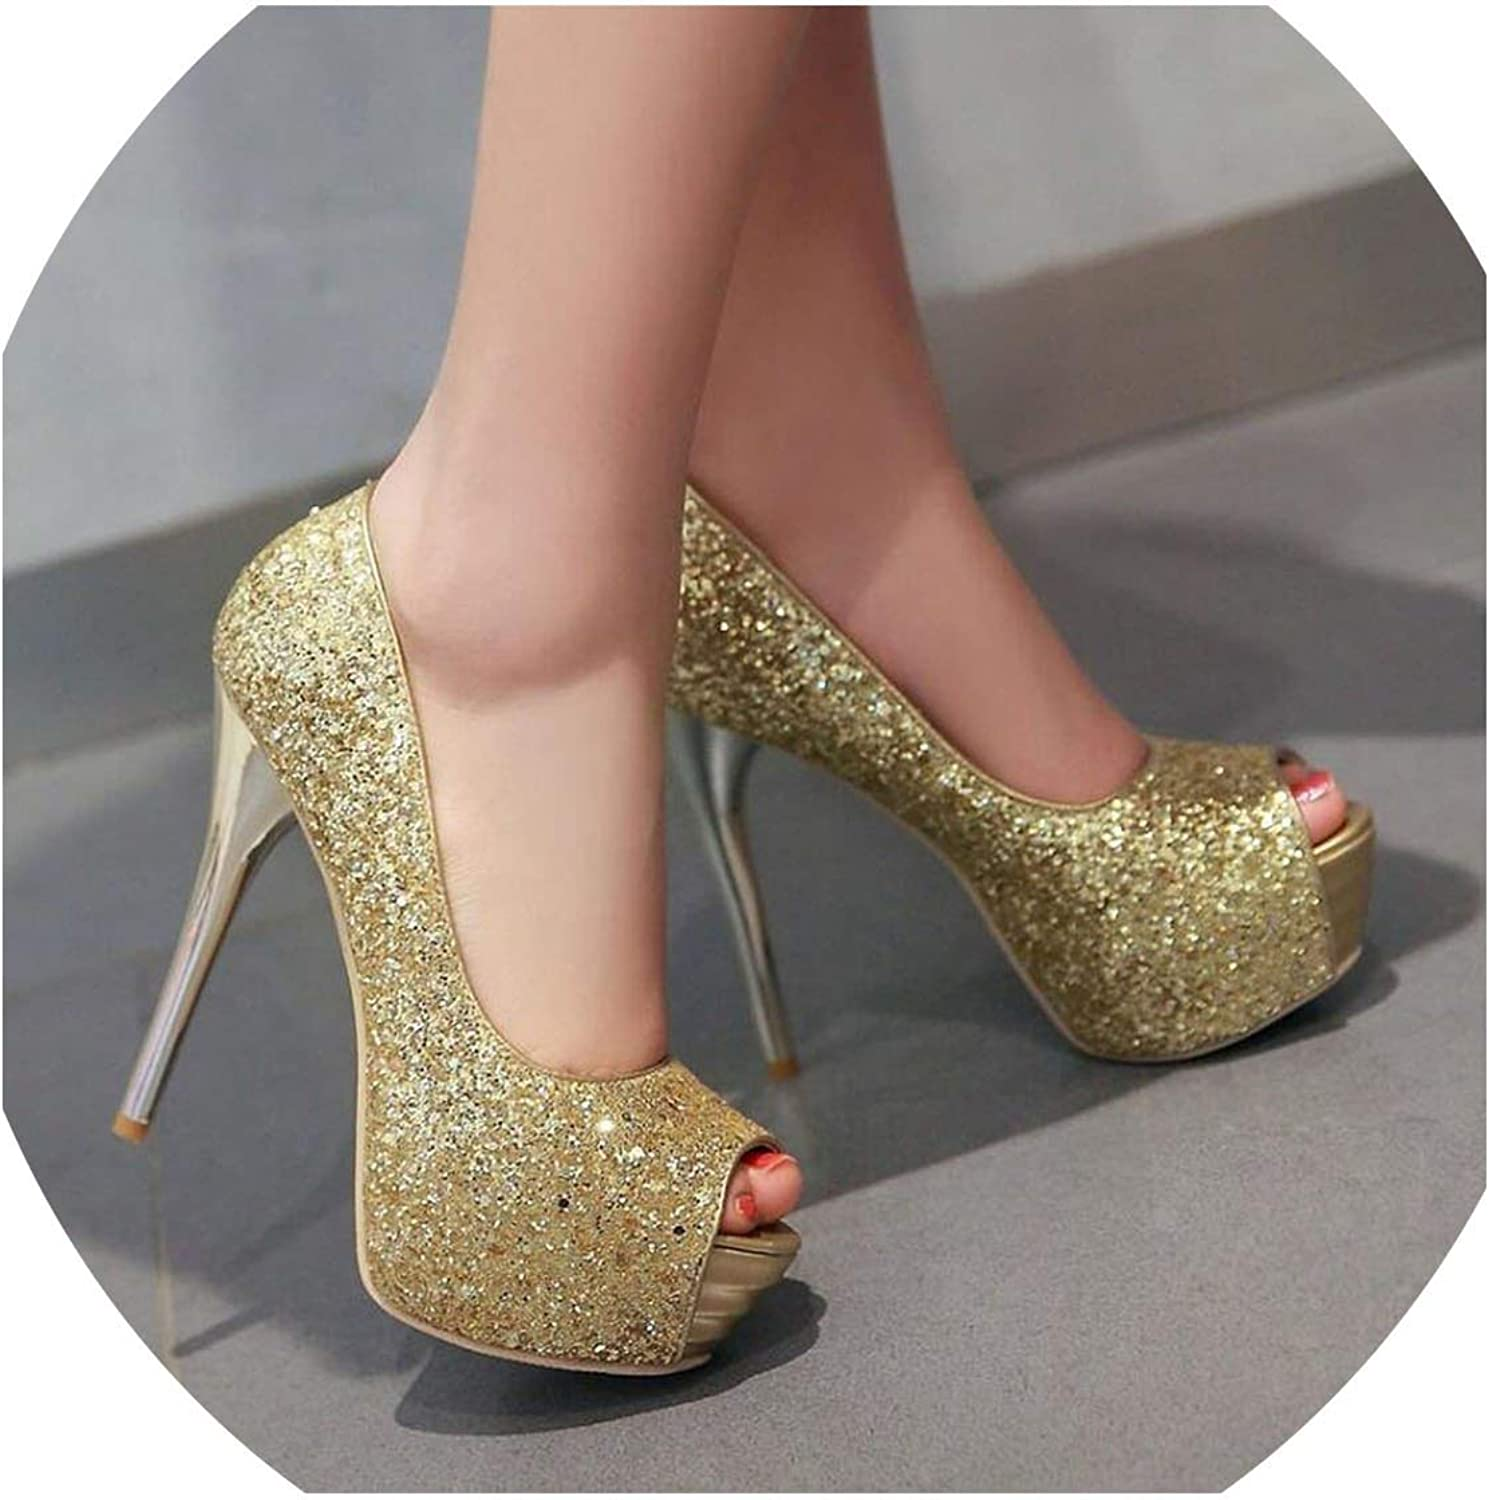 YP-fashion high Heels 13cm Stilettos Wedding shoes Ladies peep Toe gold red Party shoes